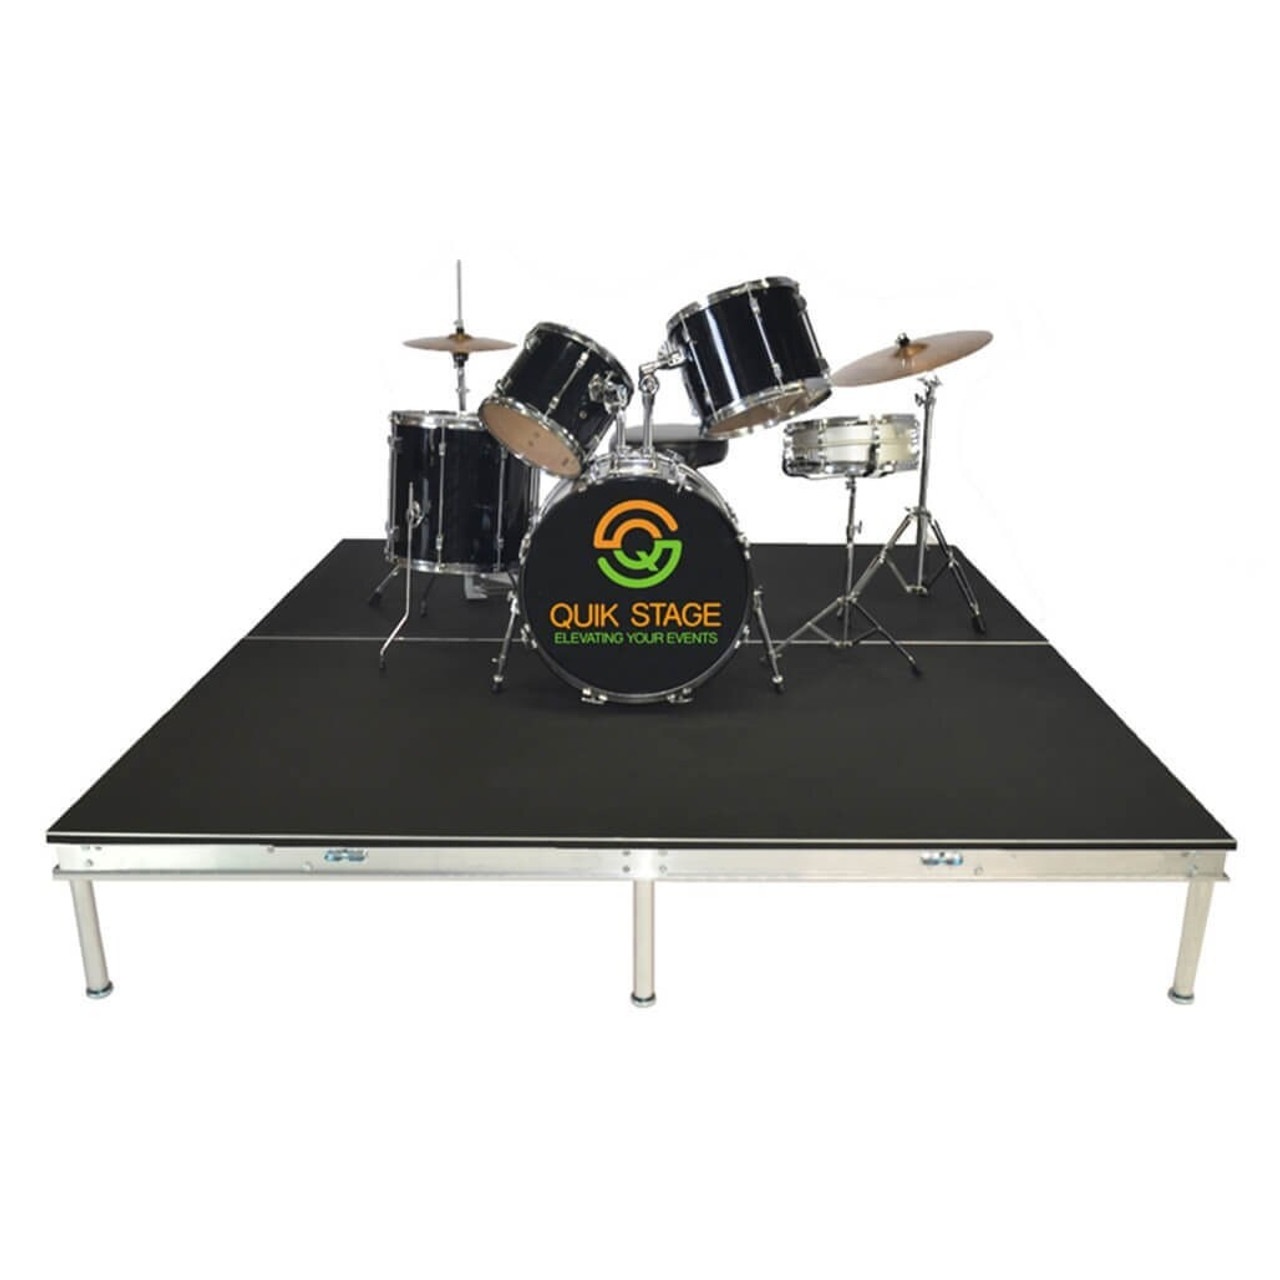 Quik Stage 8' x 8' High Portable Stage Package with Black Polyvinyl Non-Skid Surface. Additional Heights and Surfaces Available. - Drum Riser without skirting.